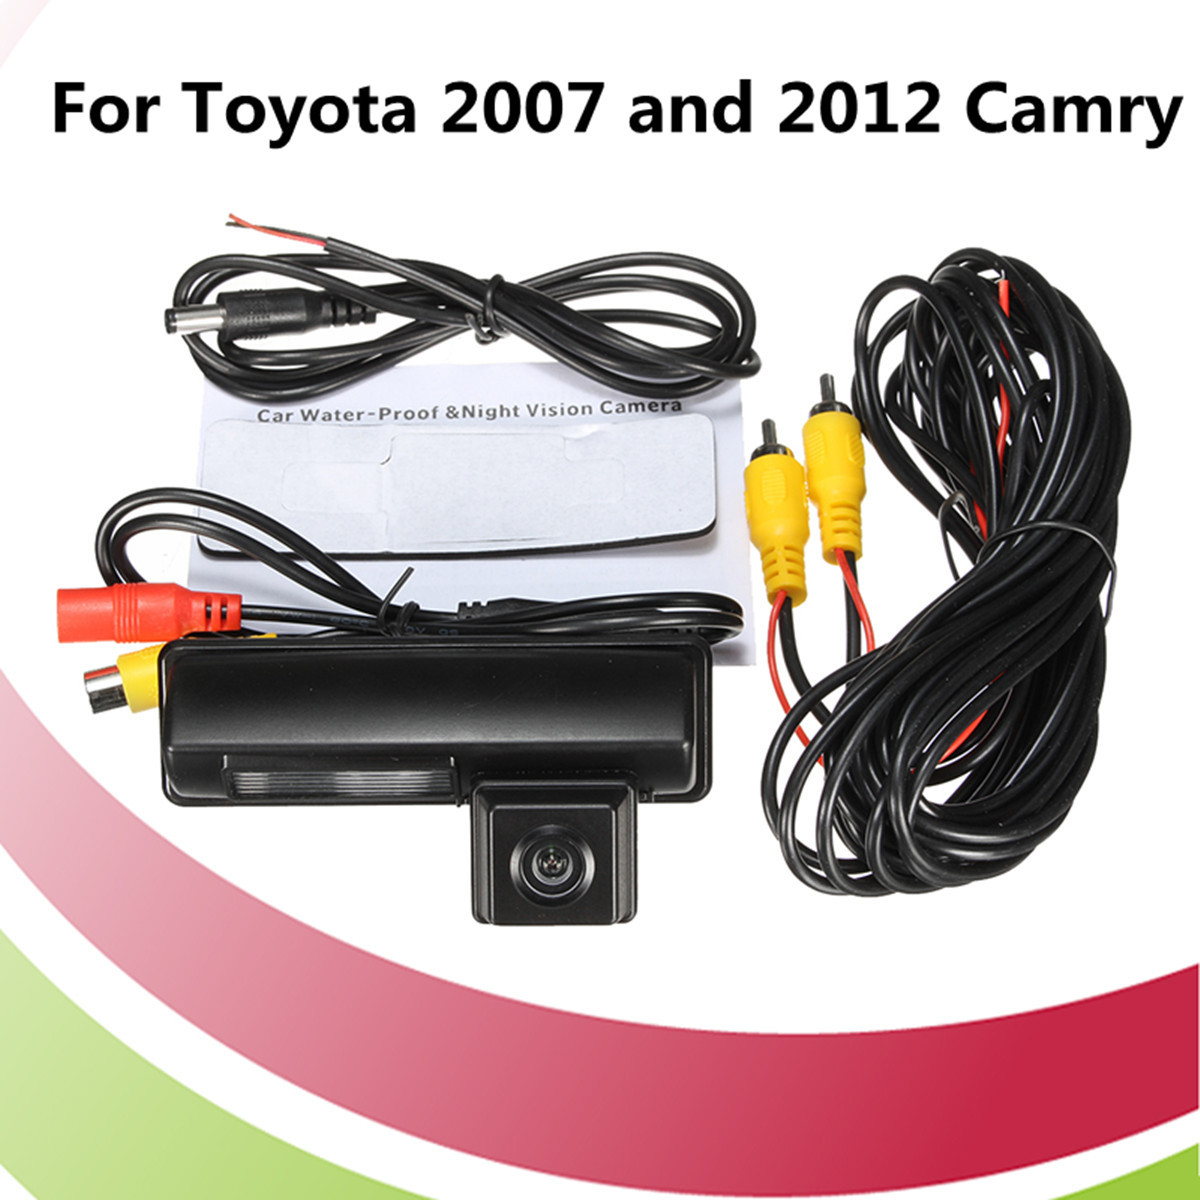 KROAK CCD/HD Car Rear View Camera Fit For Toyota 2007 and 2012 Camry Reverse Backup Camera Parking AidKROAK CCD/HD Car Rear View Camera Fit For Toyota 2007 and 2012 Camry Reverse Backup Camera Parking Aid